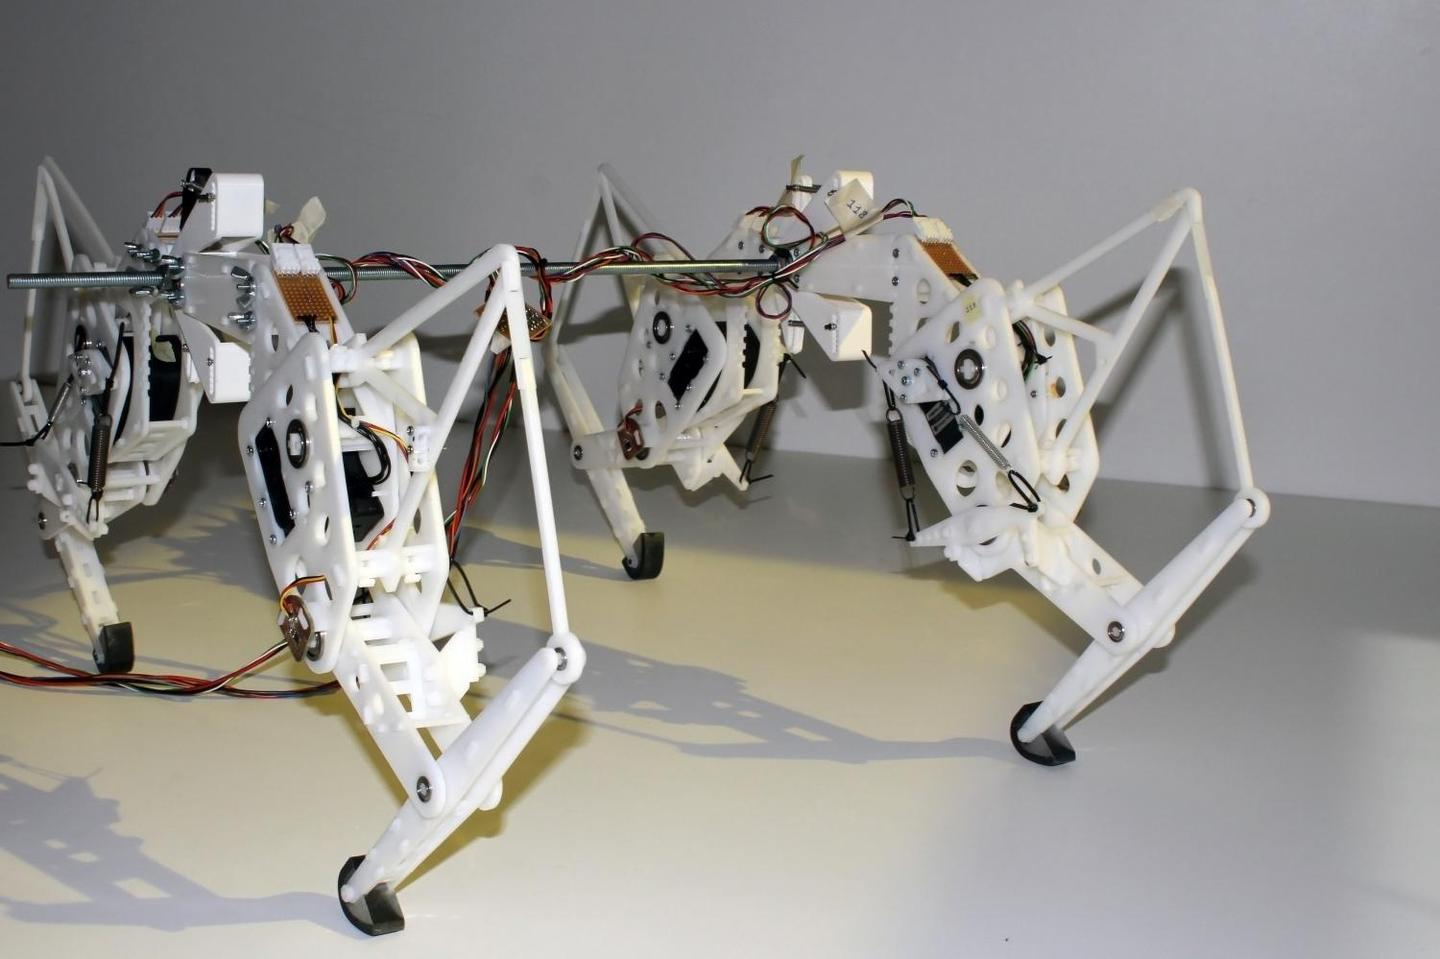 The robot cheetah uses only 15 percent more energy than its animal counterpart